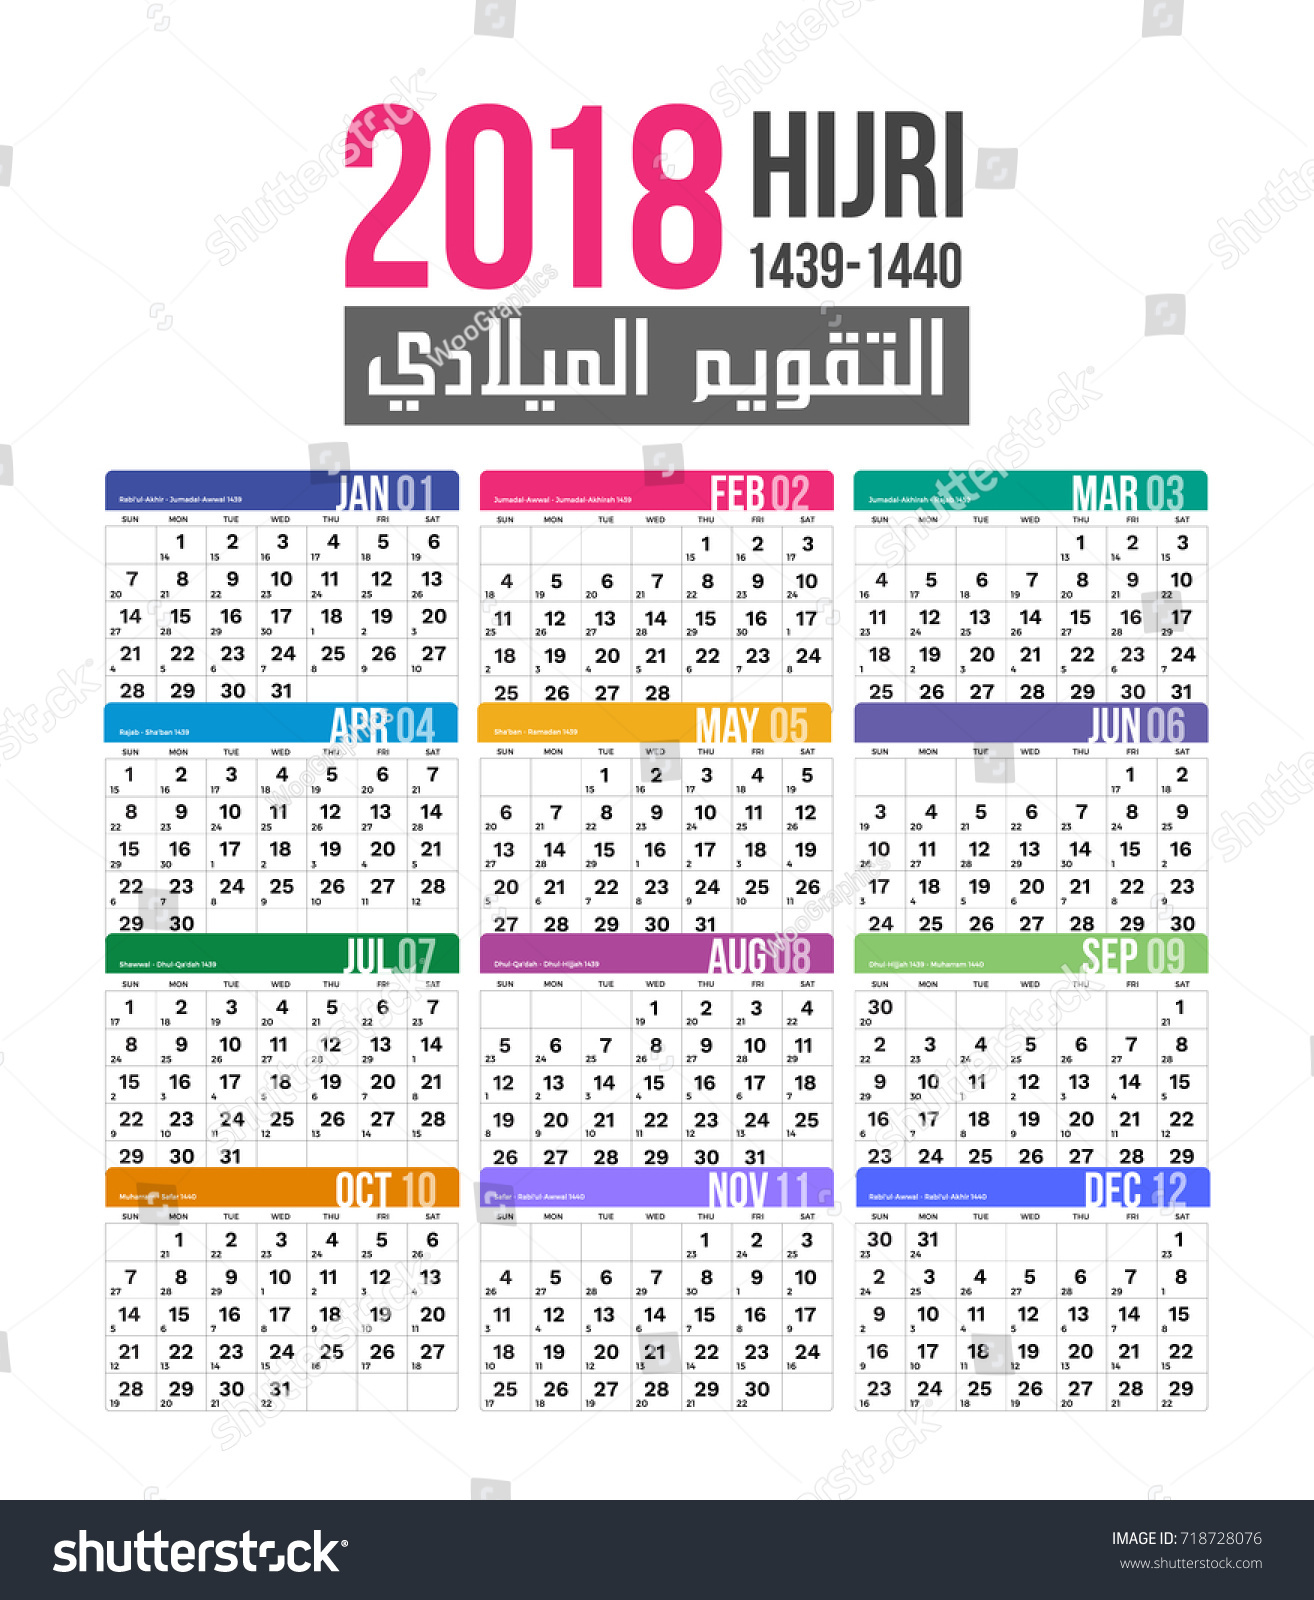 2018 Islamic Hijri Calendar Template Design Stock Vector 718728076 ...